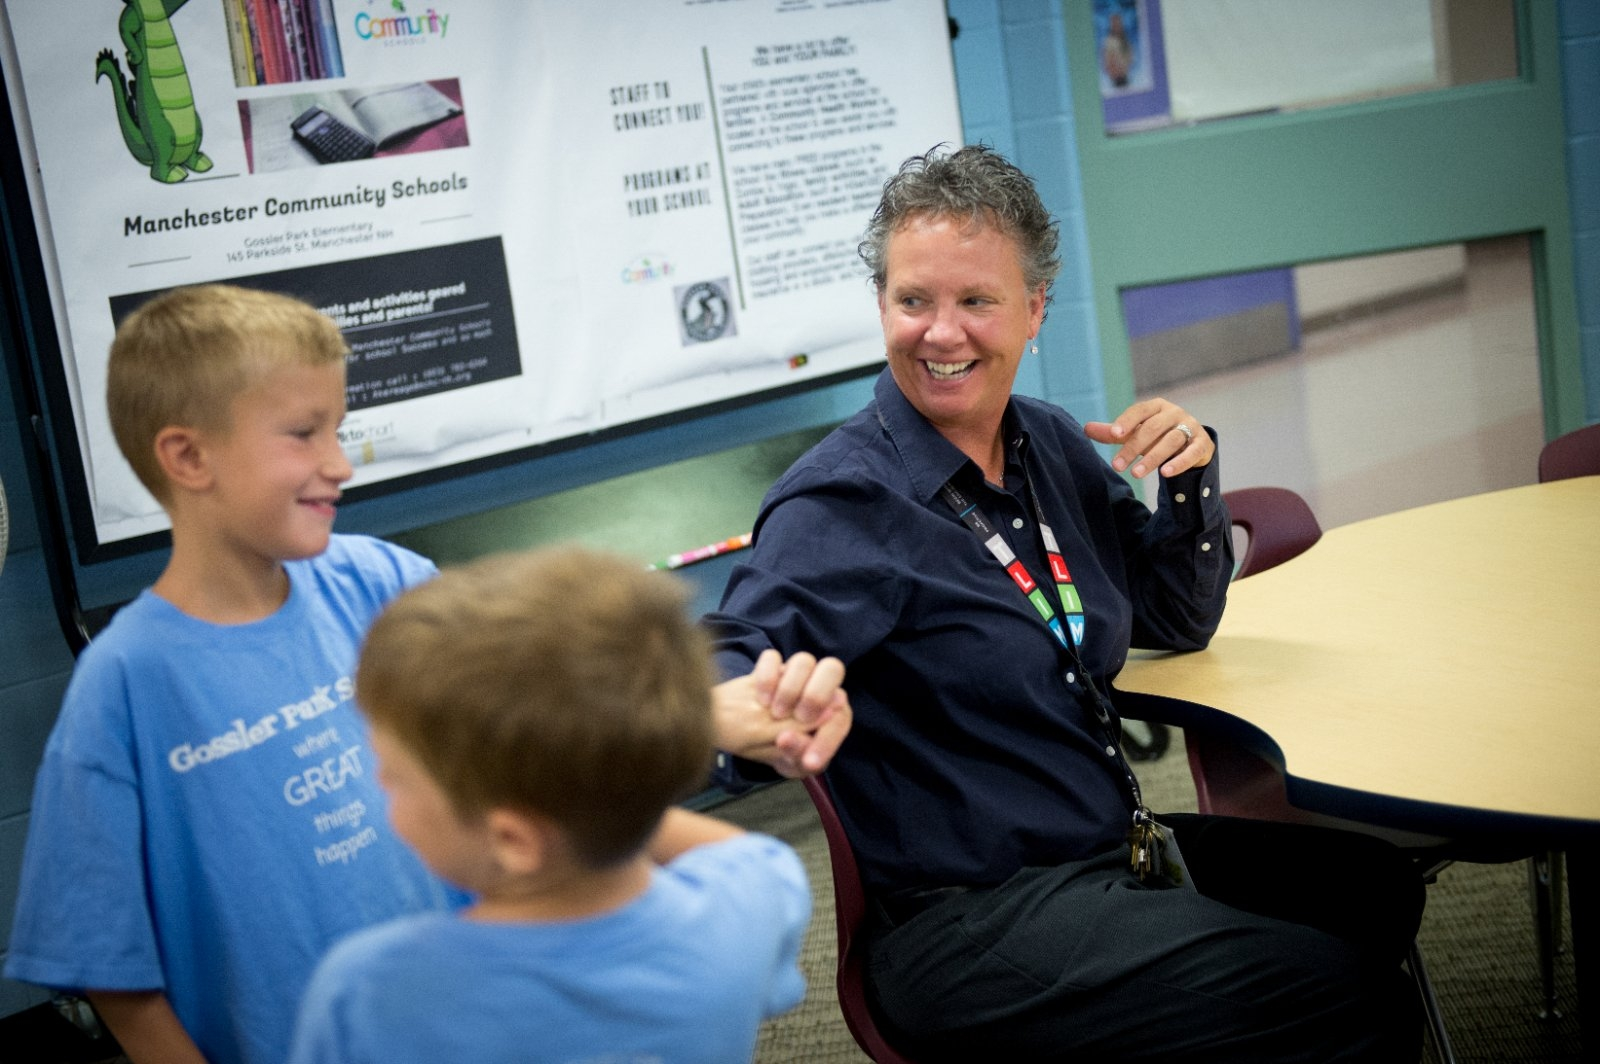 A school principal talks and laughs with elementary school students.